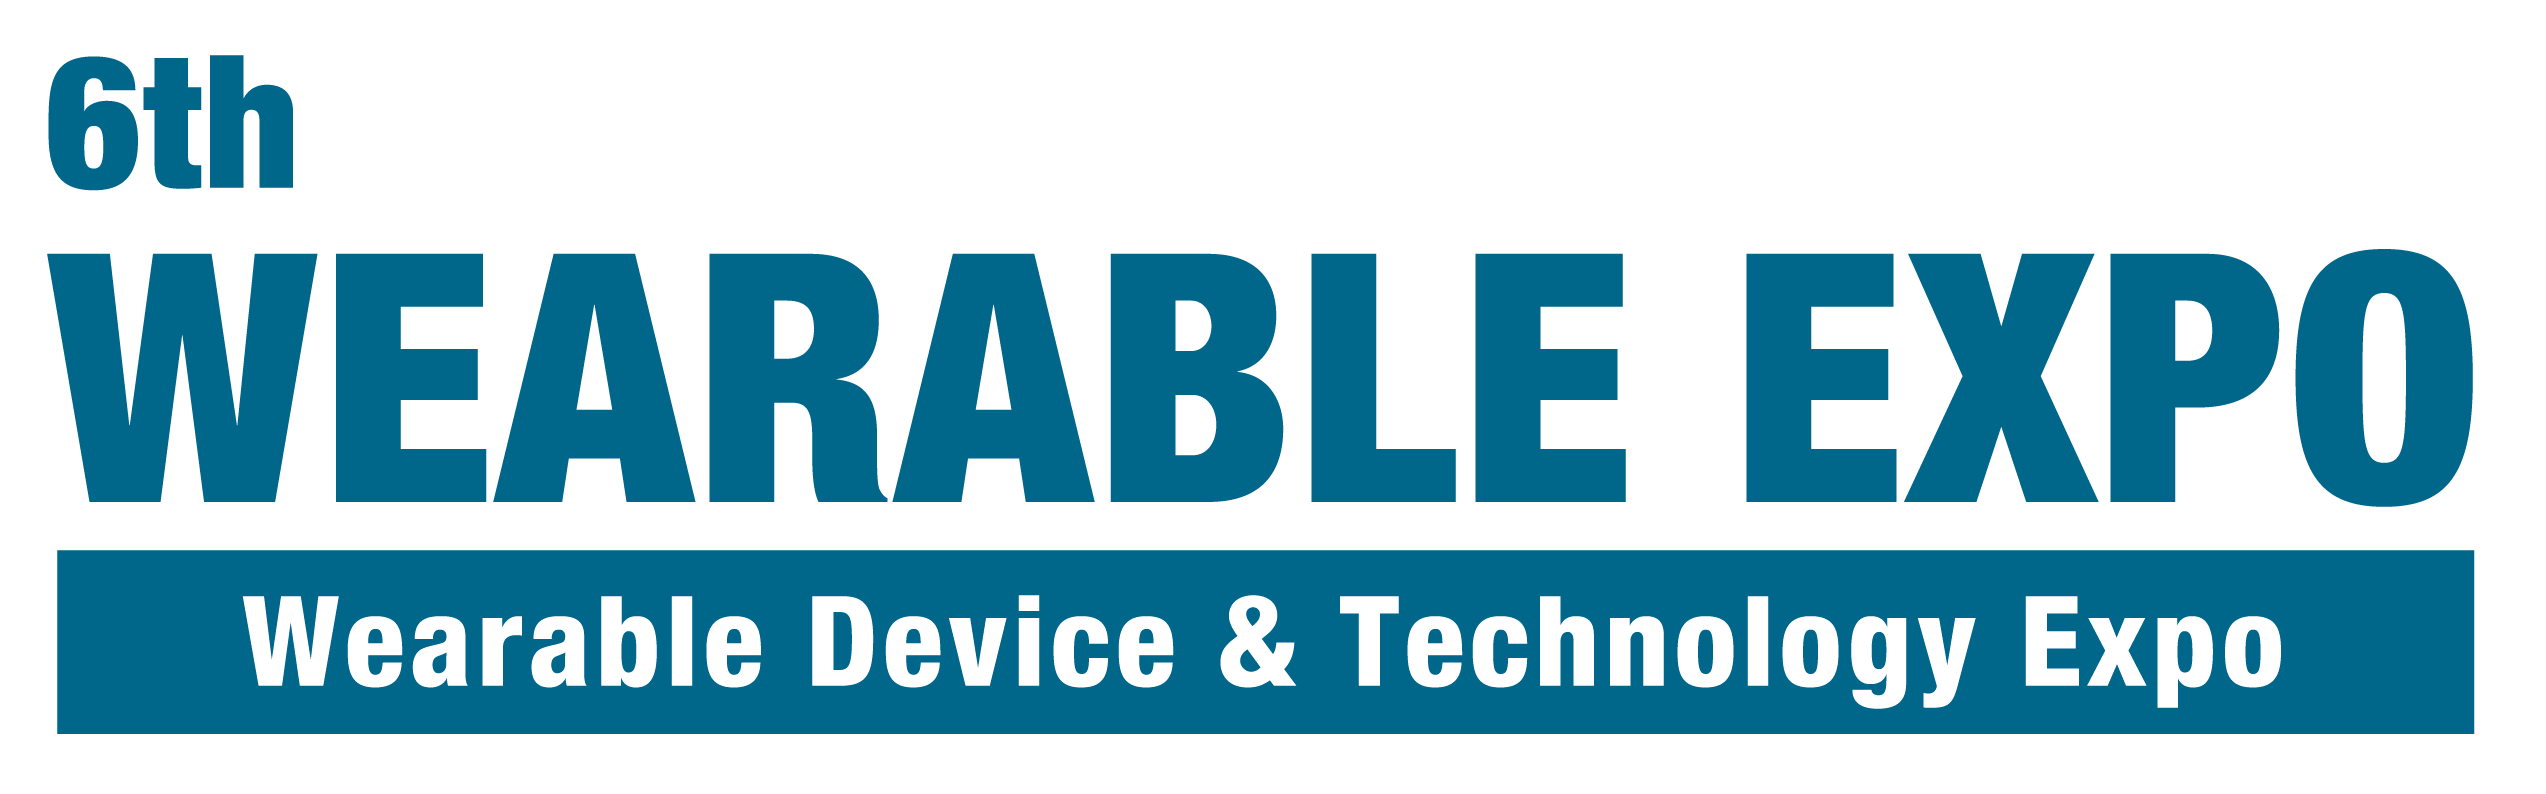 6th WEARABLE EXPO - Wearable Device & Technology Expo logo